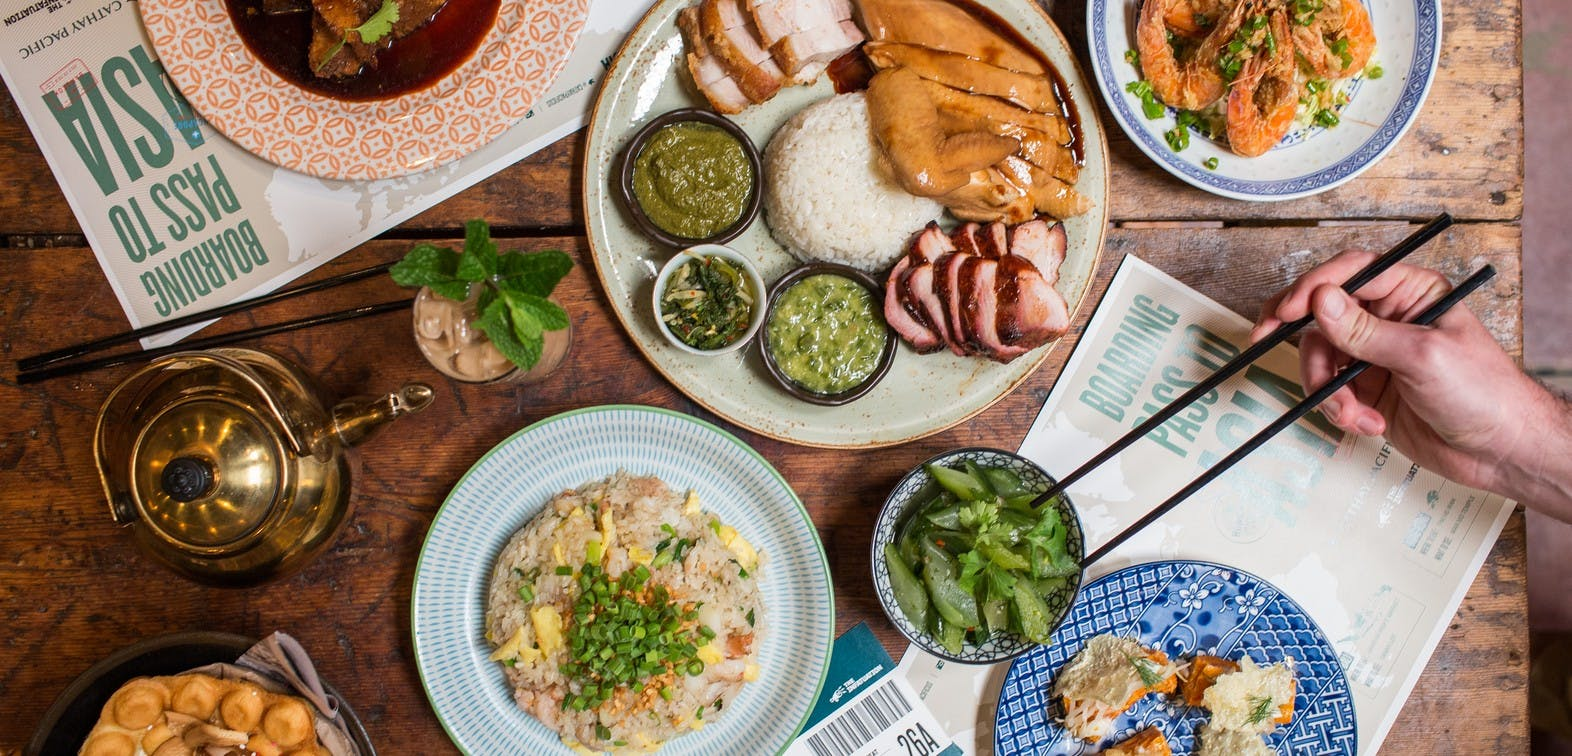 Win 2 Tickets To A Dinner Party At Tigerfork with Cathay Pacific Airways - Washington DC - The Infatuation